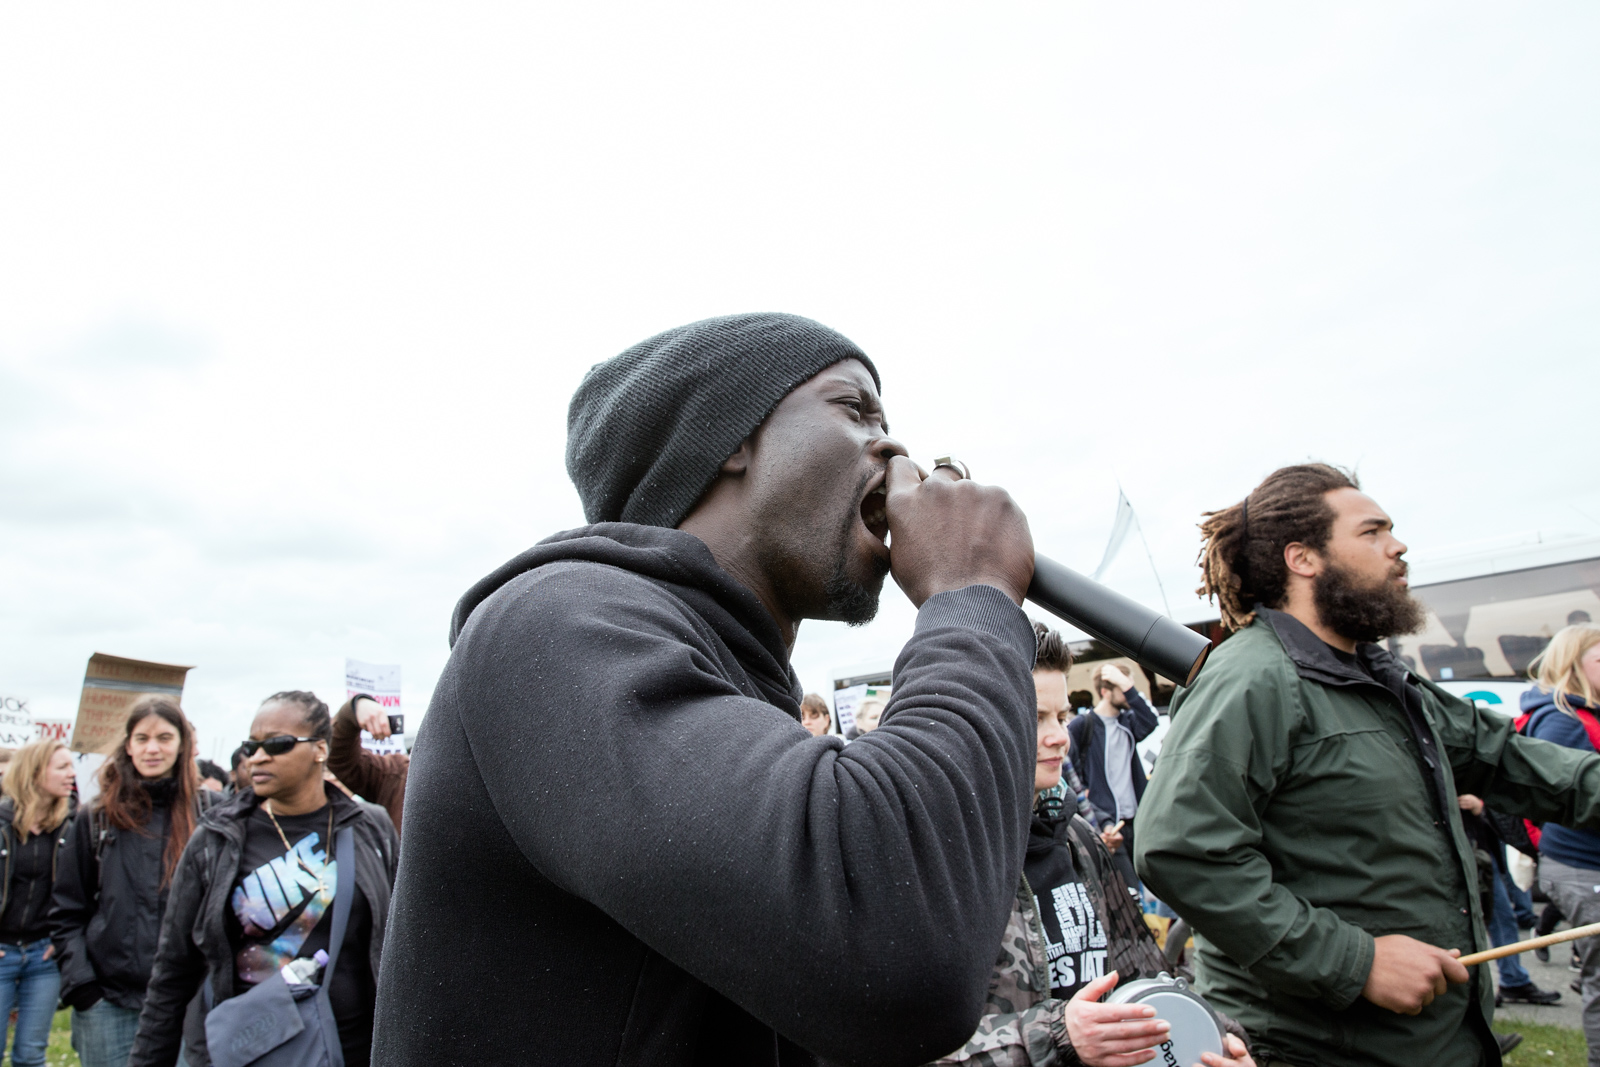 Yarlswood Demo-May 2017-Photo Bex Wade-5.jpg